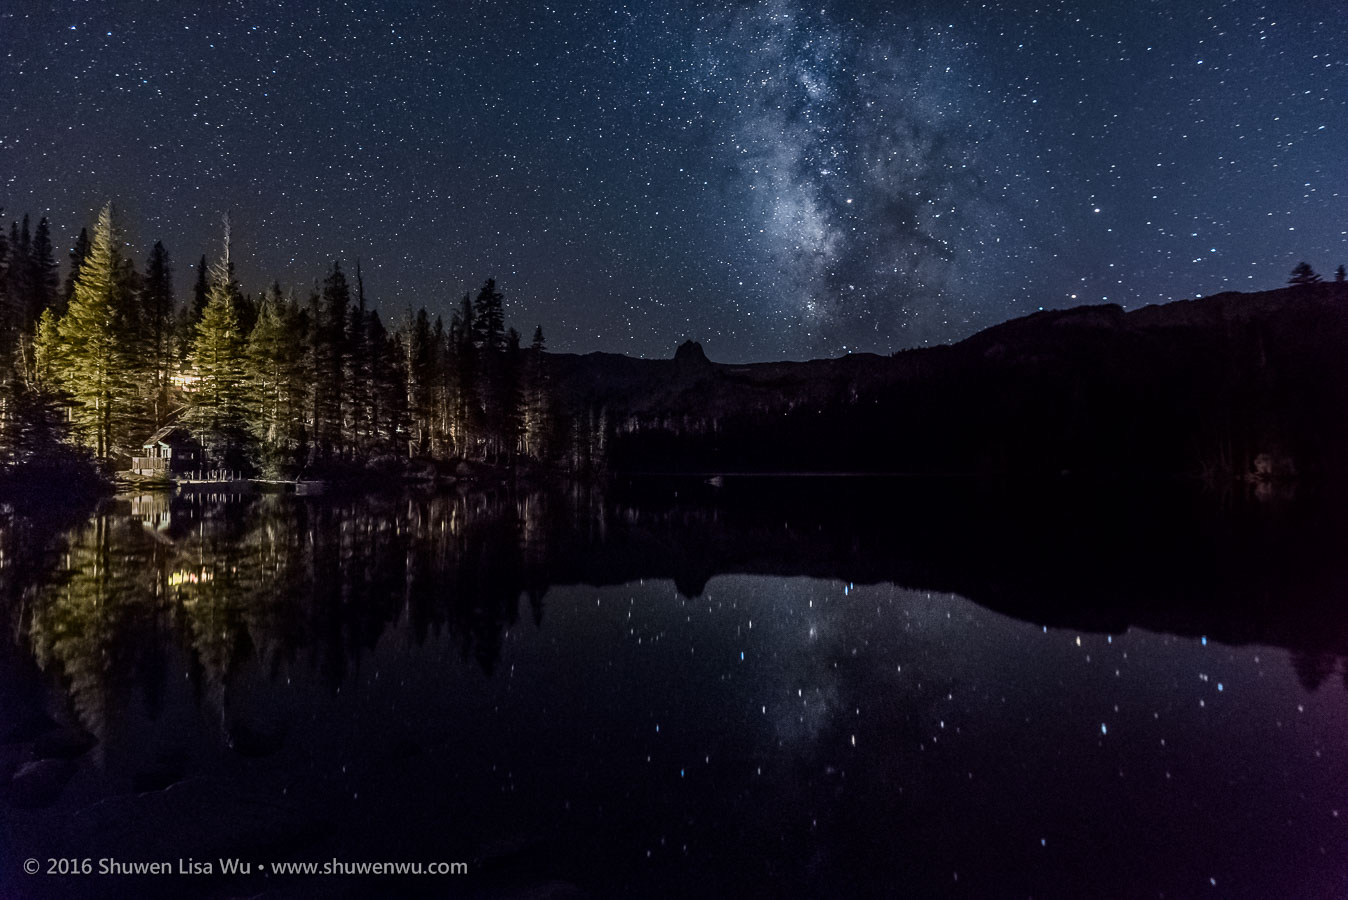 Stars and Milky Way reflect in Lake Mamie at night, Lake Mamie, Mammoth Lakes, California, September 2016.